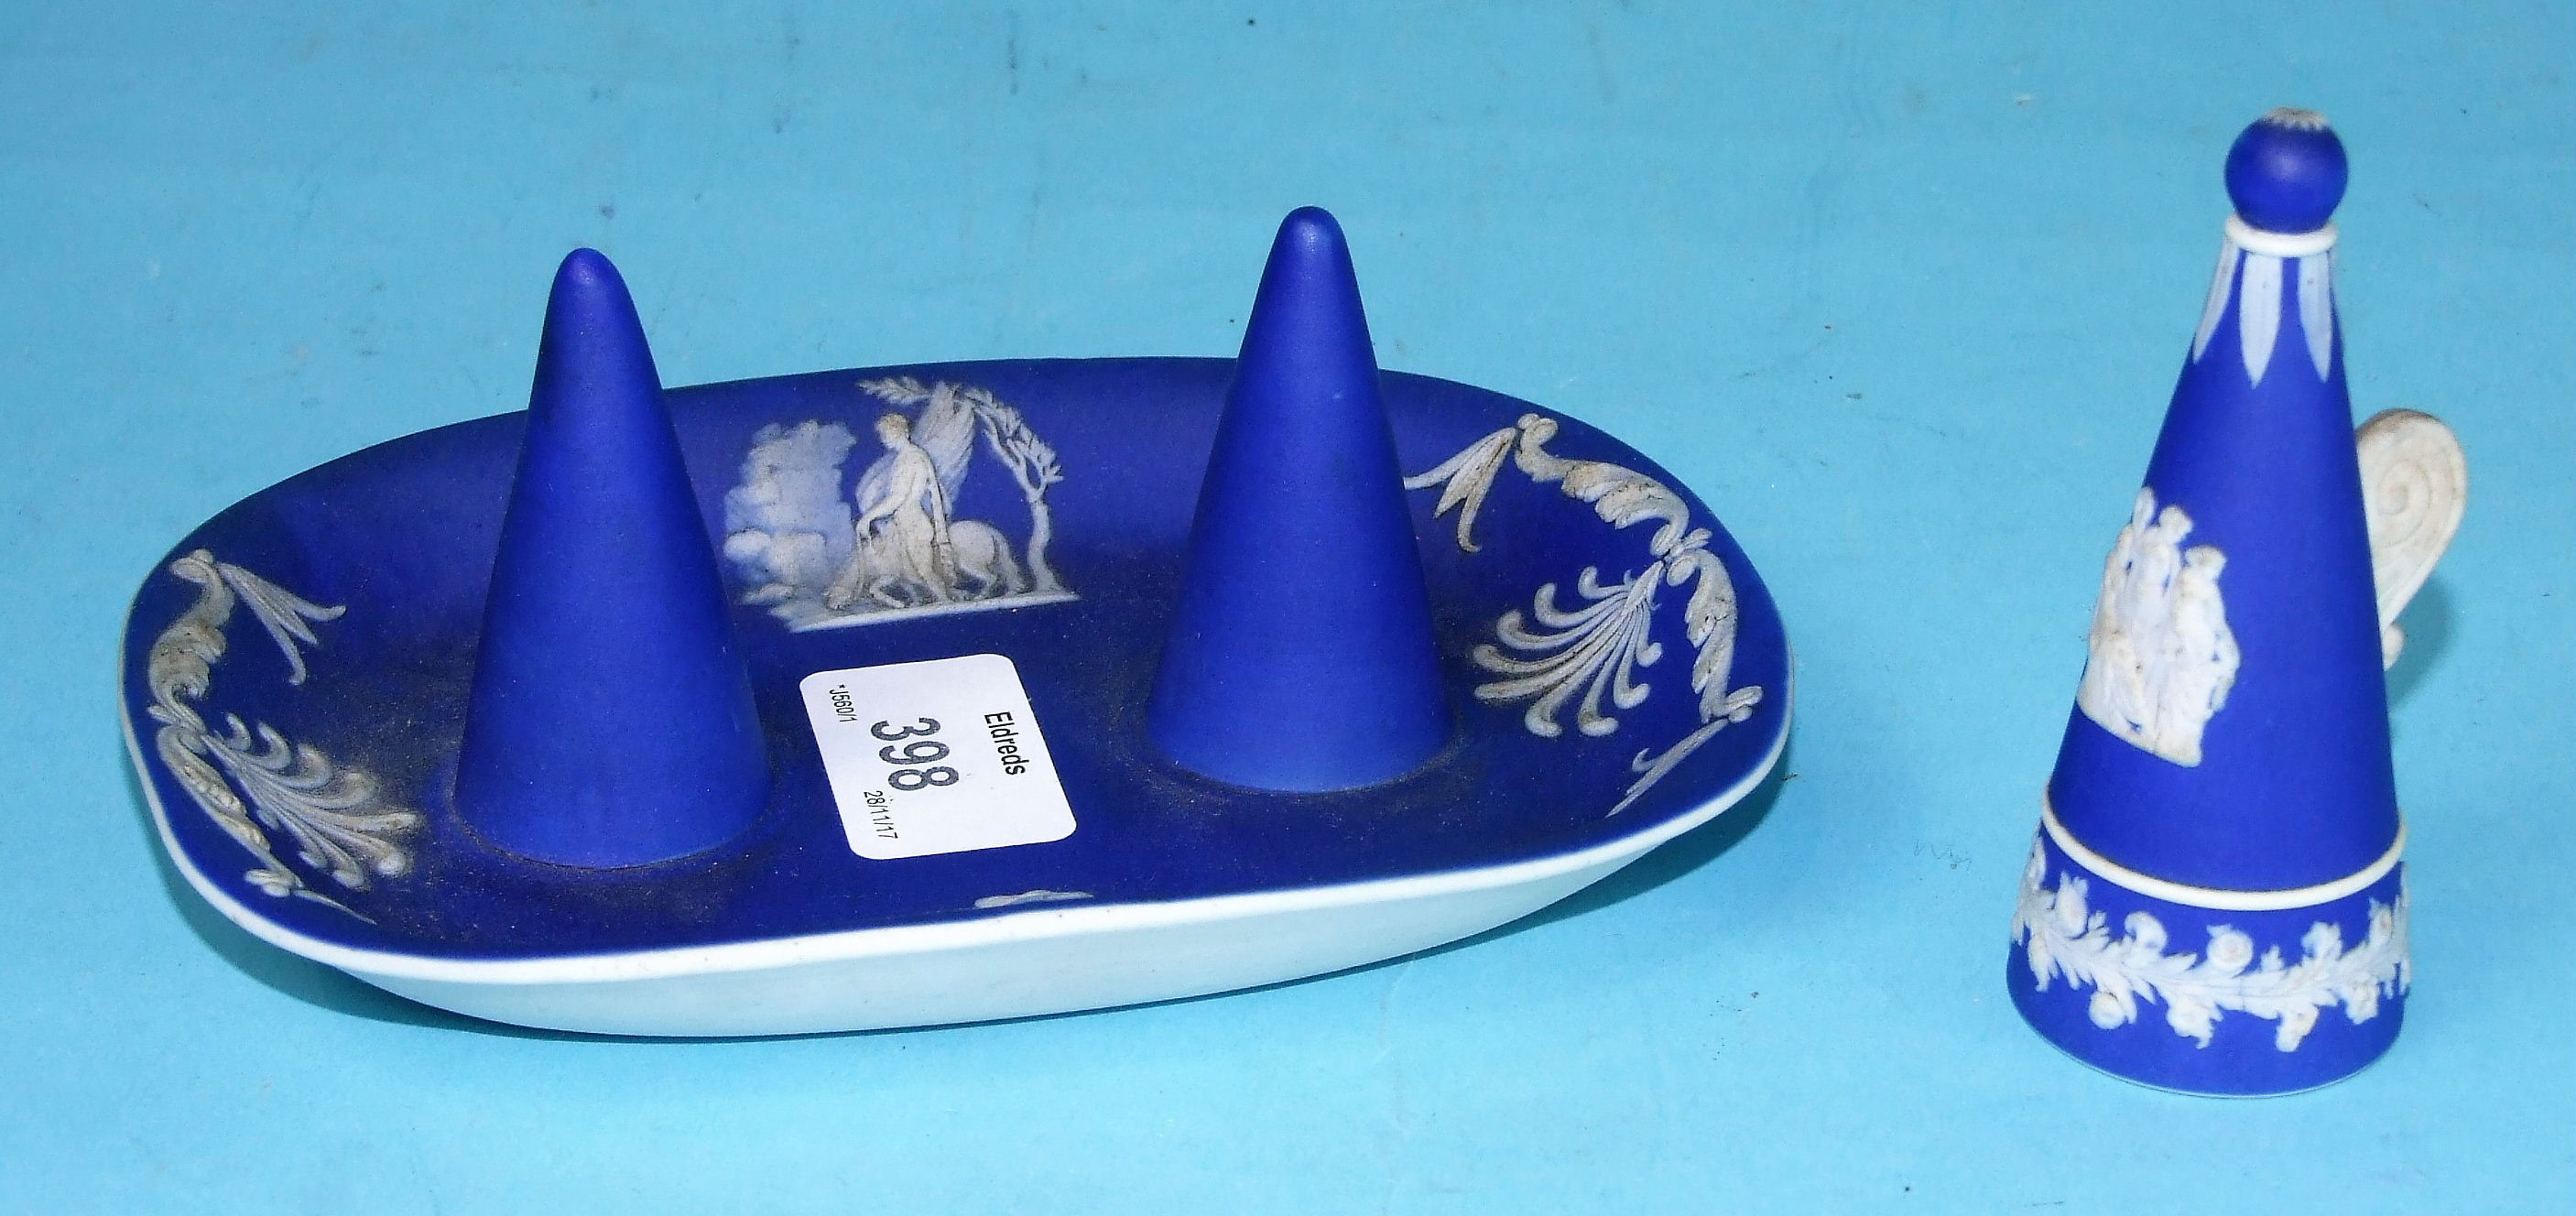 Lot 398 - A 19th century blue and white jasperware double candle snuffer depicting classical figures, only one